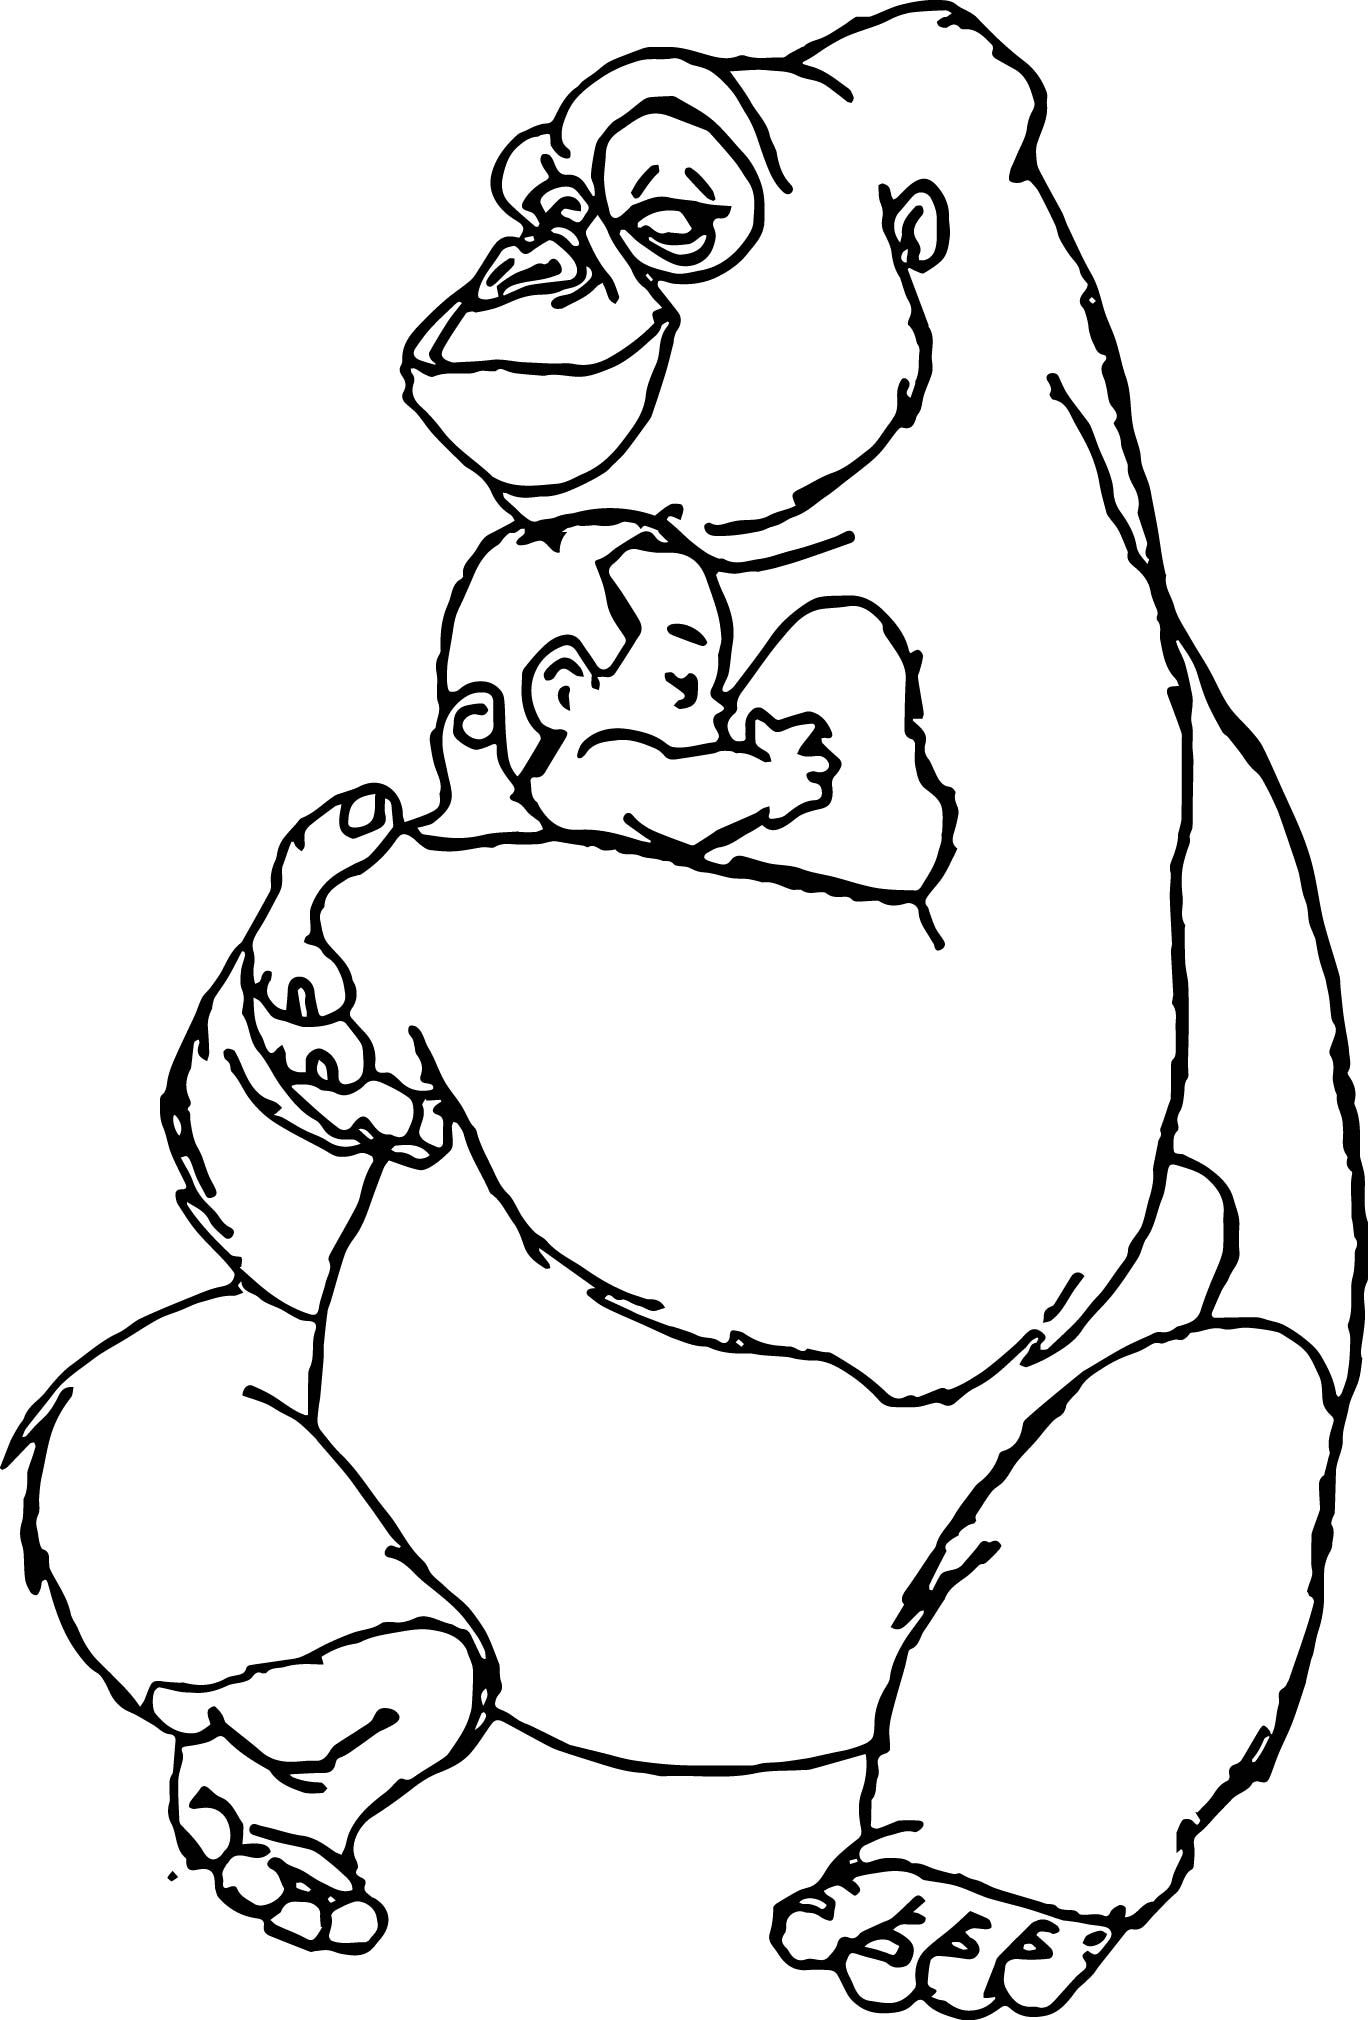 Disney Baby Tarzan Love Coloring Page | wecoloringpage | Pinterest ...